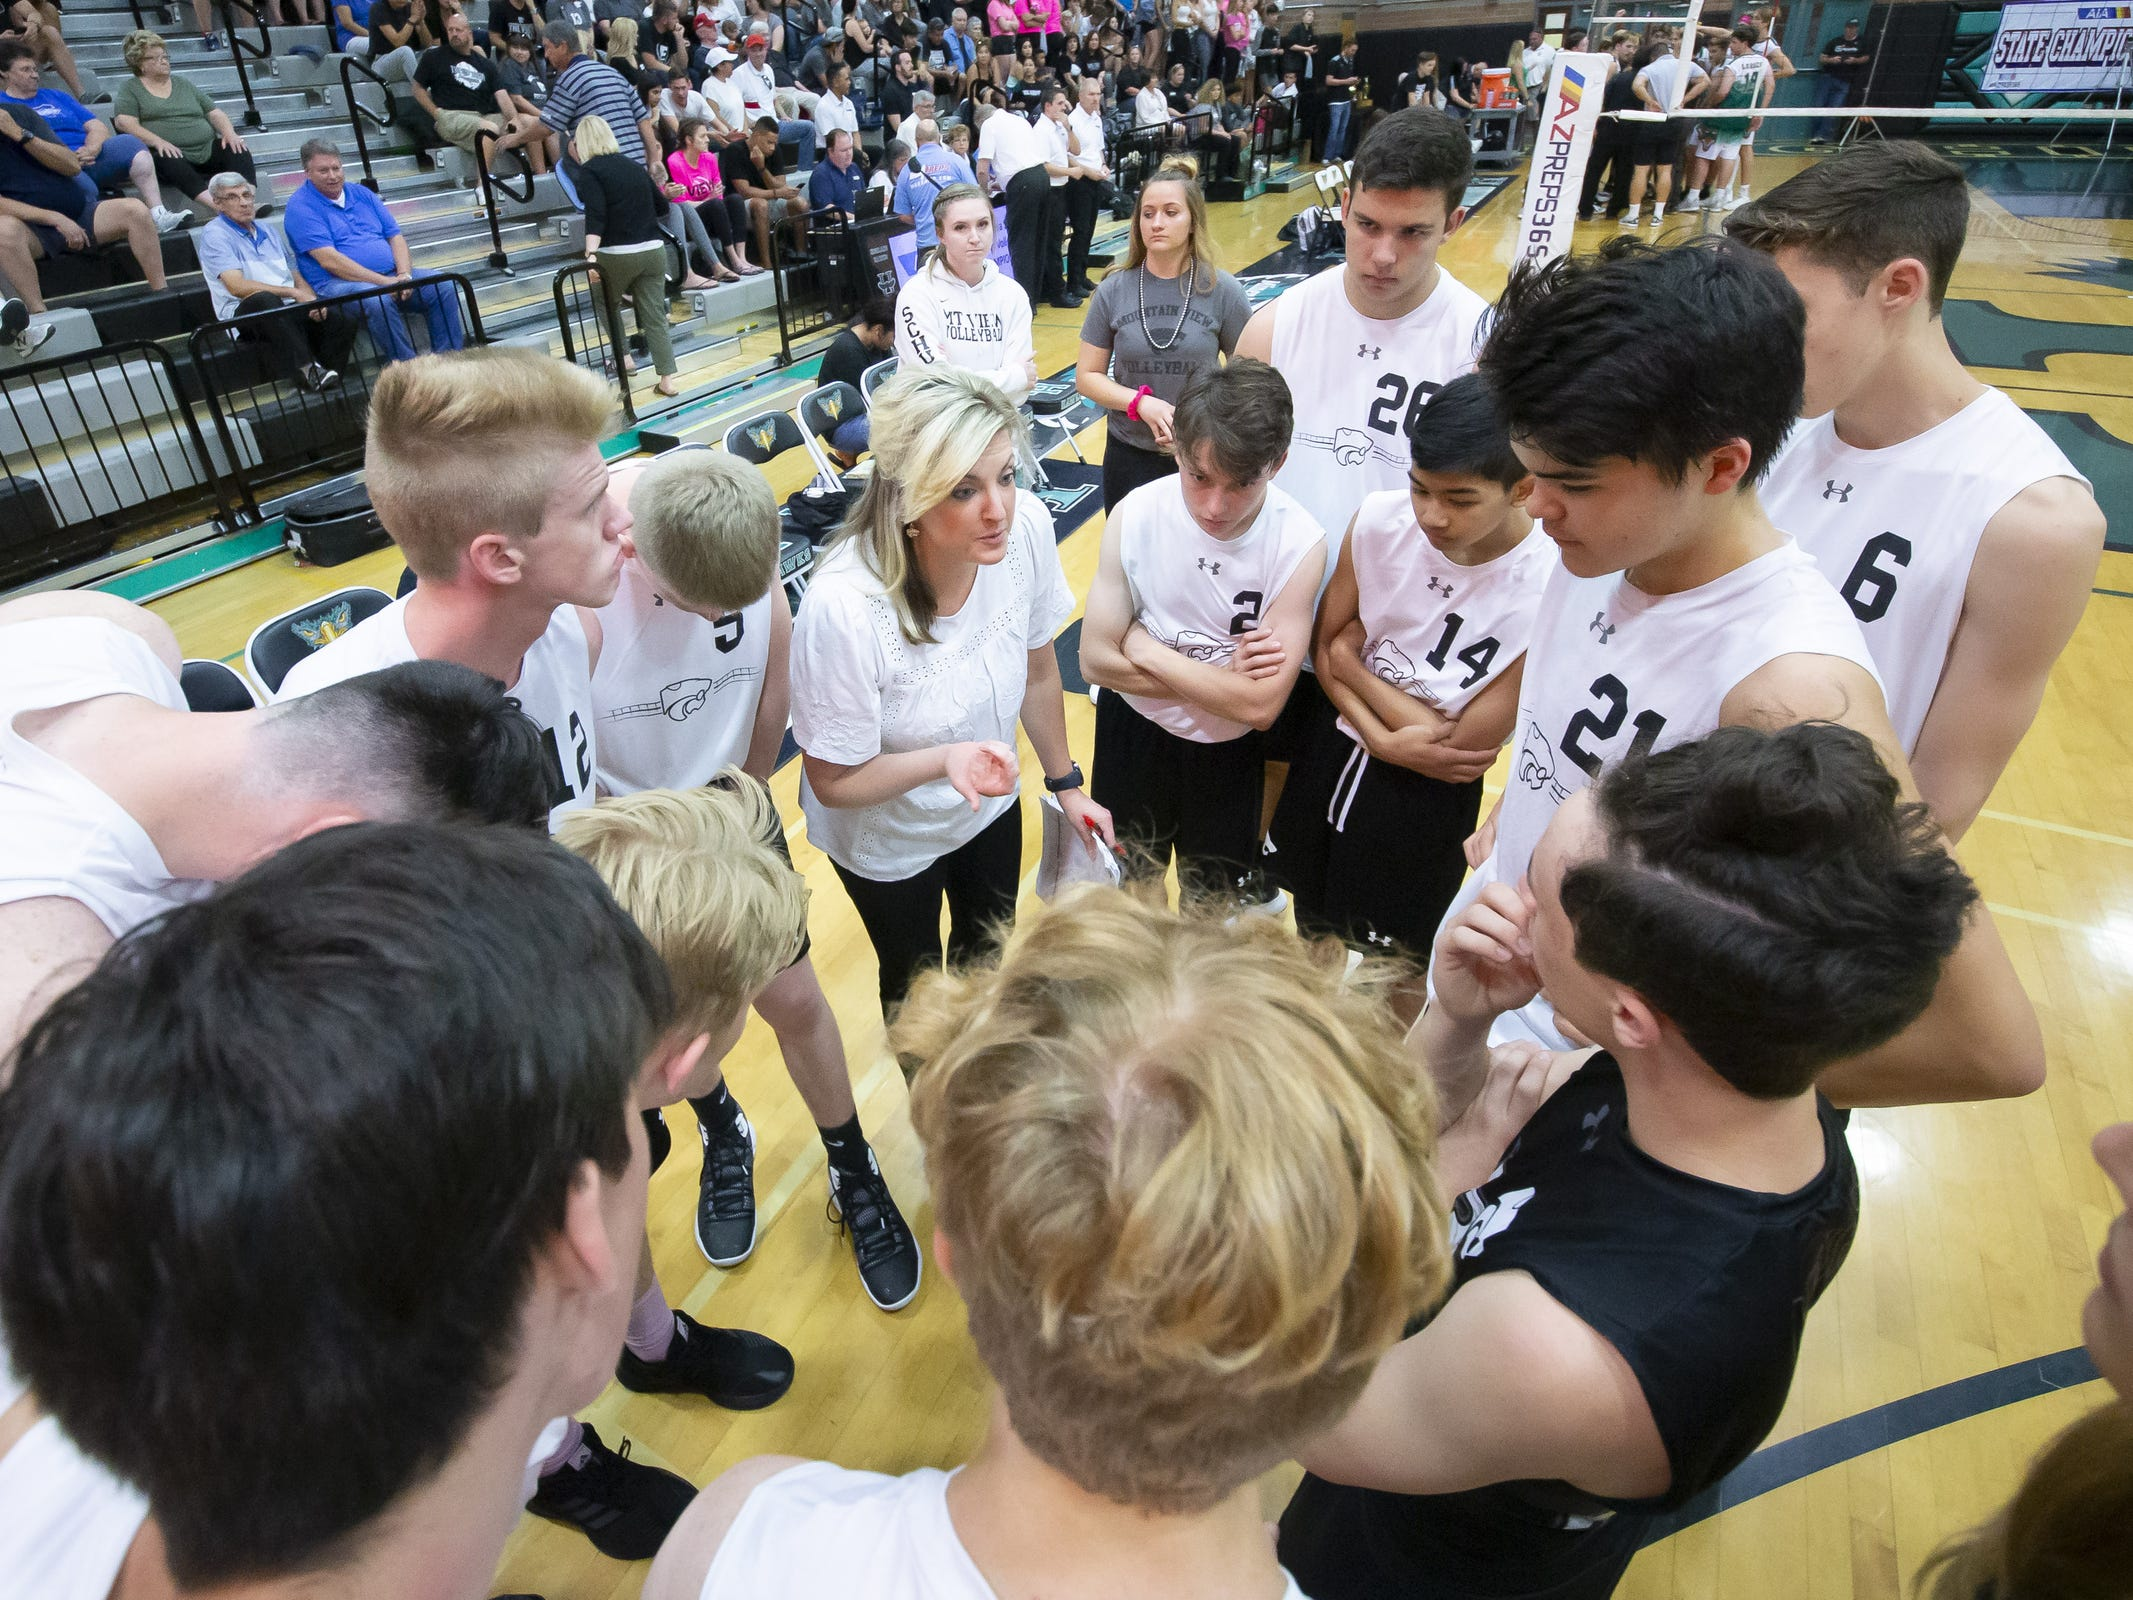 Head coach Lindsey Spivey of the Tucson Mountain View Mountain Lions speaks during a timeout during the 5A Boys Volleyball State Championships against the Campo Verde Coyotes at Higley High School on Saturday, May 11, 2019 in Gilbert, Arizona.